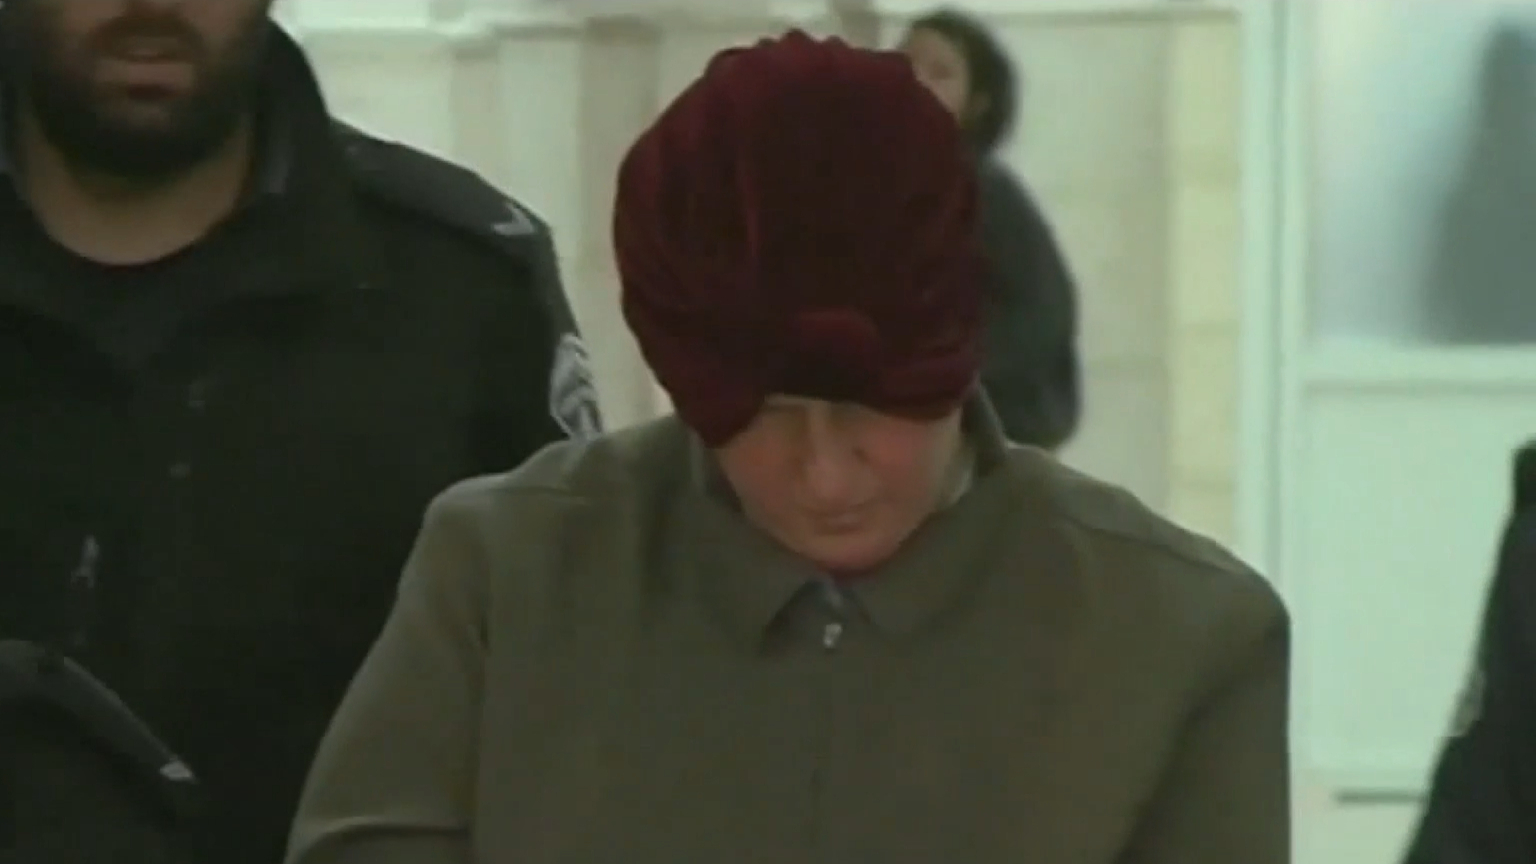 Malka Leifer faces court over allegations of child sexual abuse